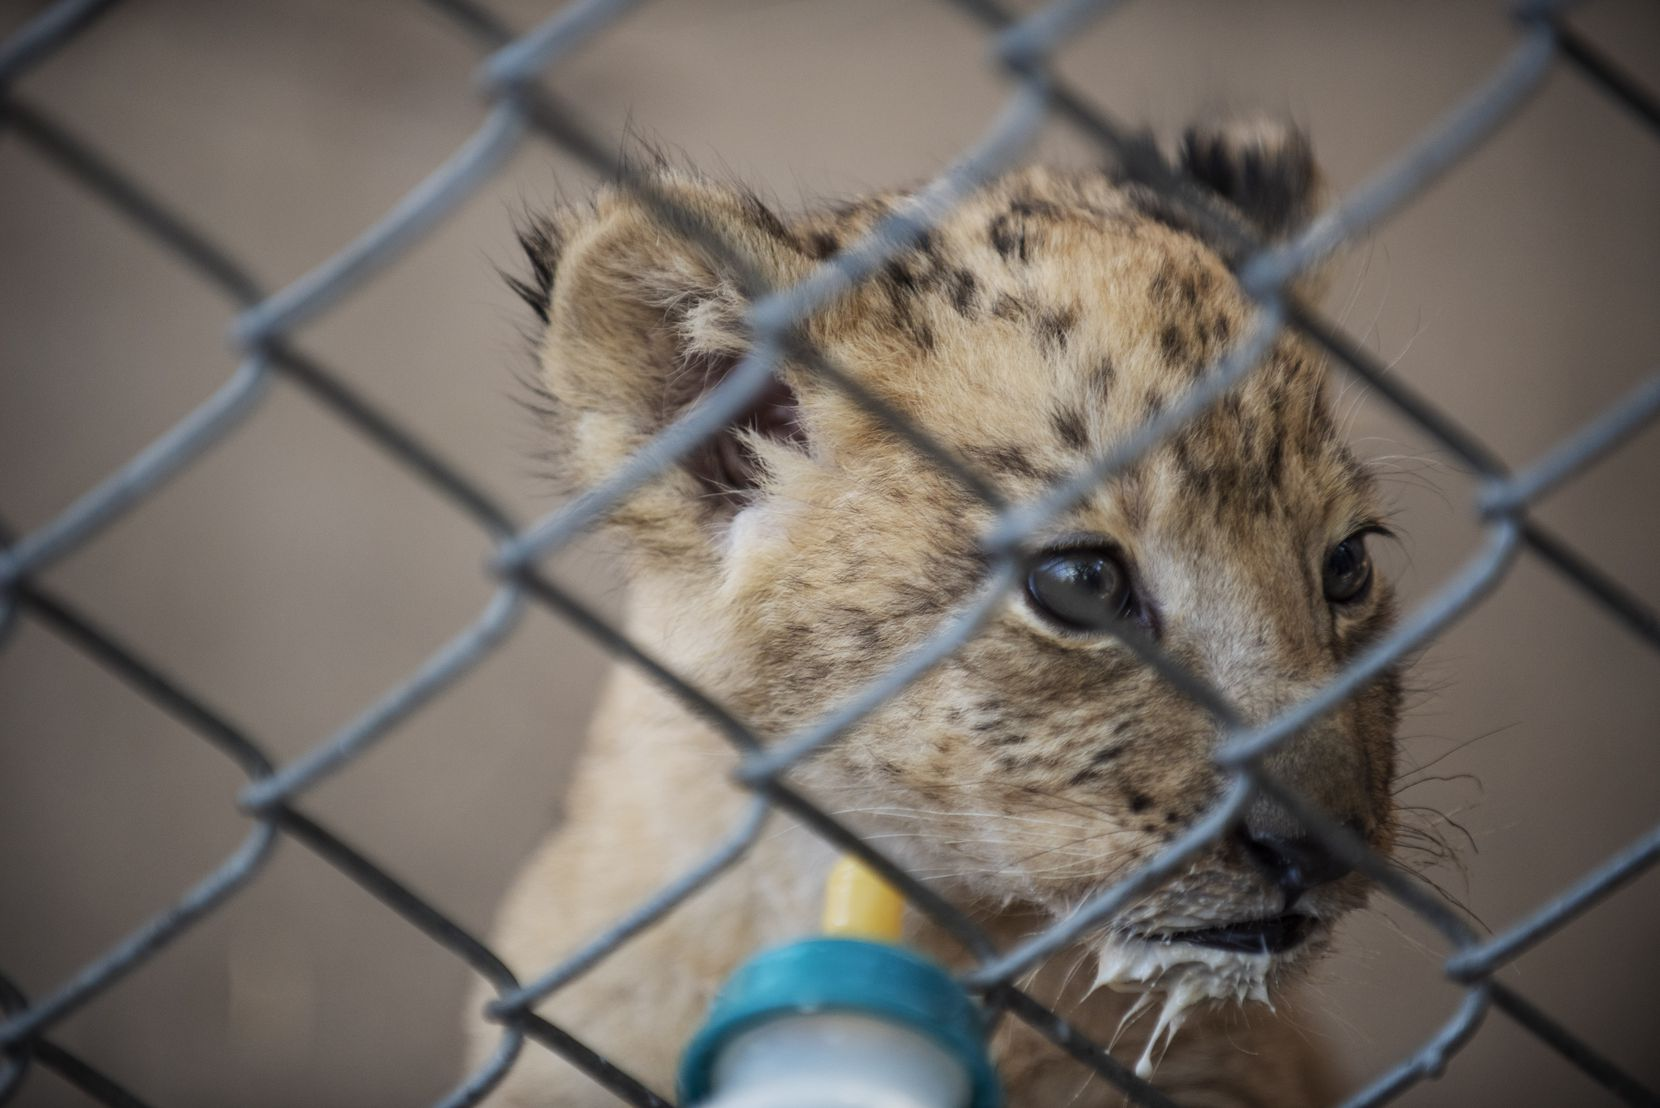 Izwi, sporting a milk goatee, looks away for a moment while feeding from a bottle with special formula by Dallas Zoo senior zoologists, on Tuesday, Sept. 29, 2020 in Dallas. Ben Torres/Special Contributor